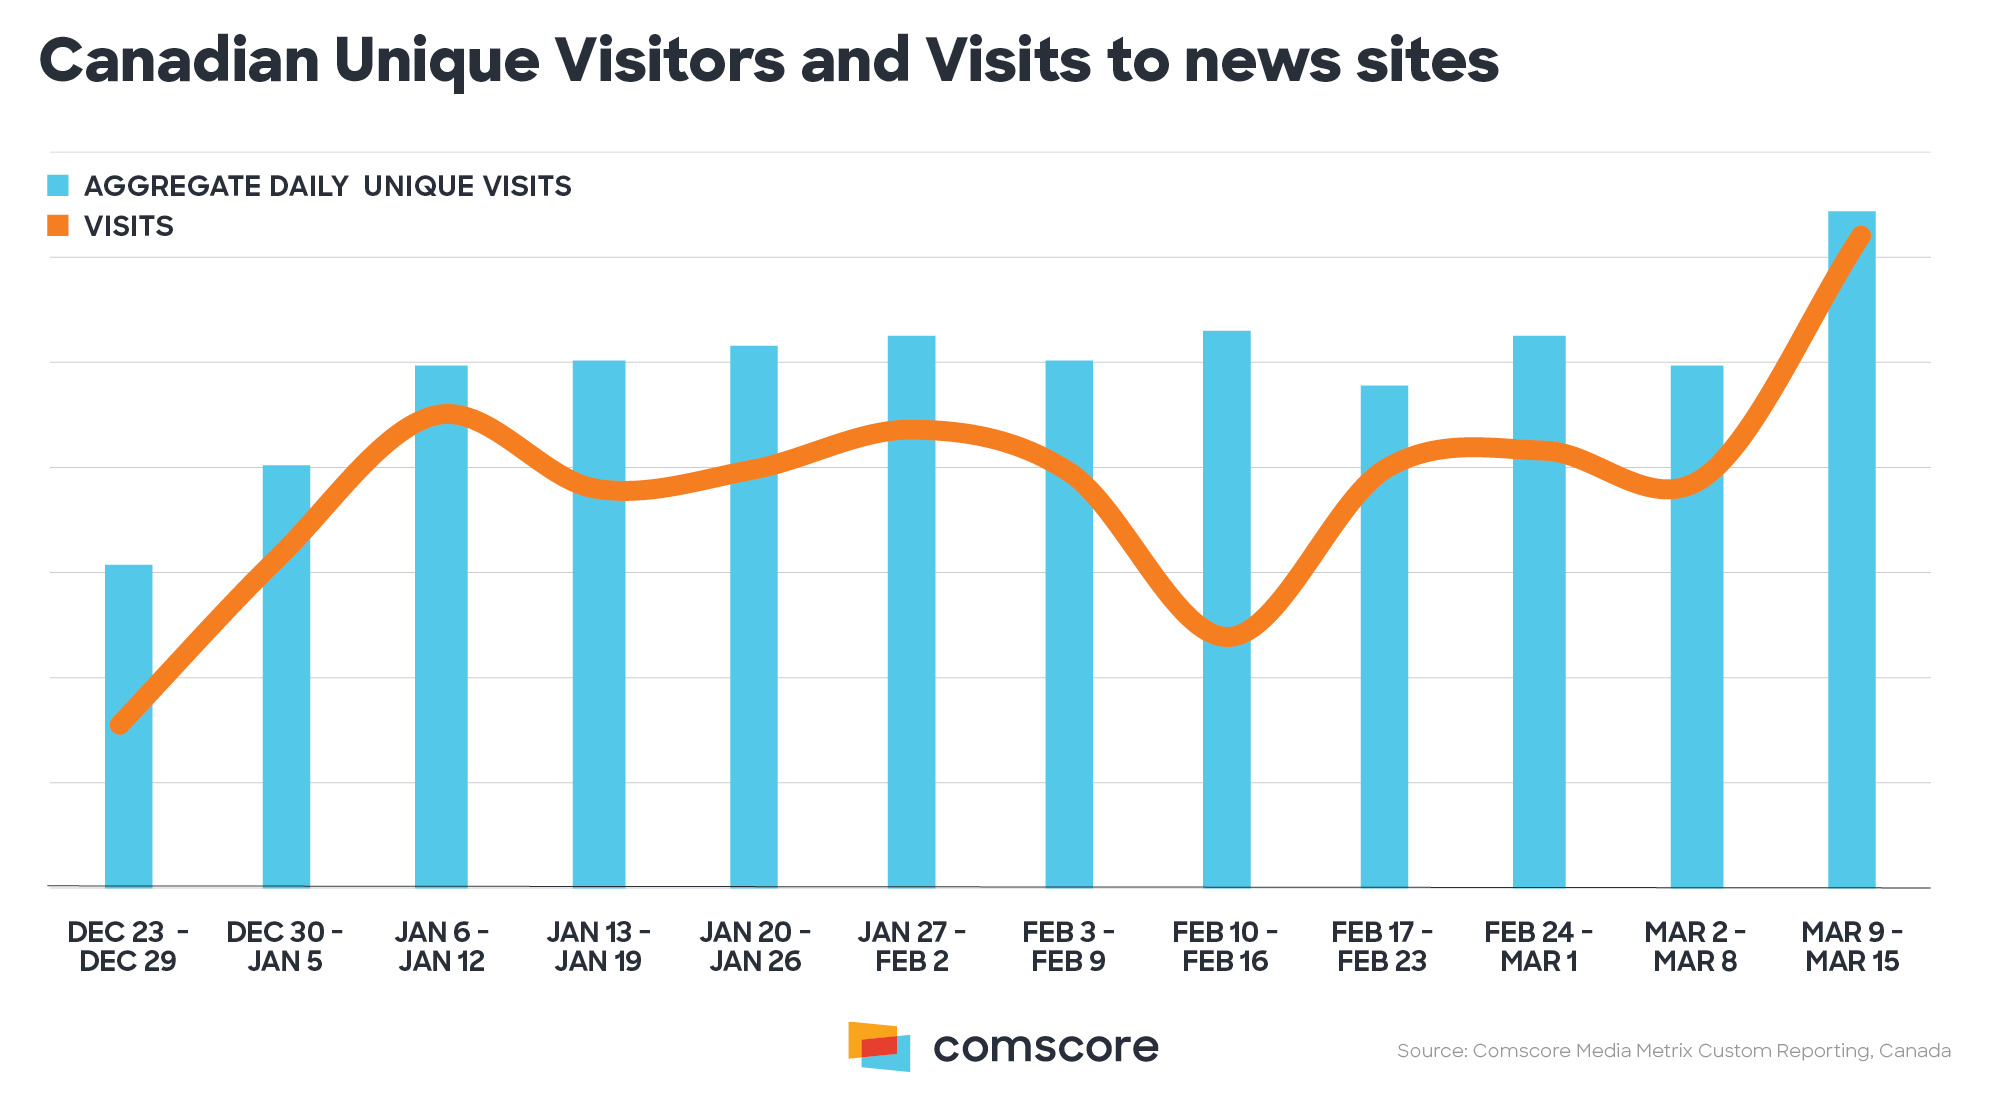 Canadian Unique Visitors and Visits to news sites